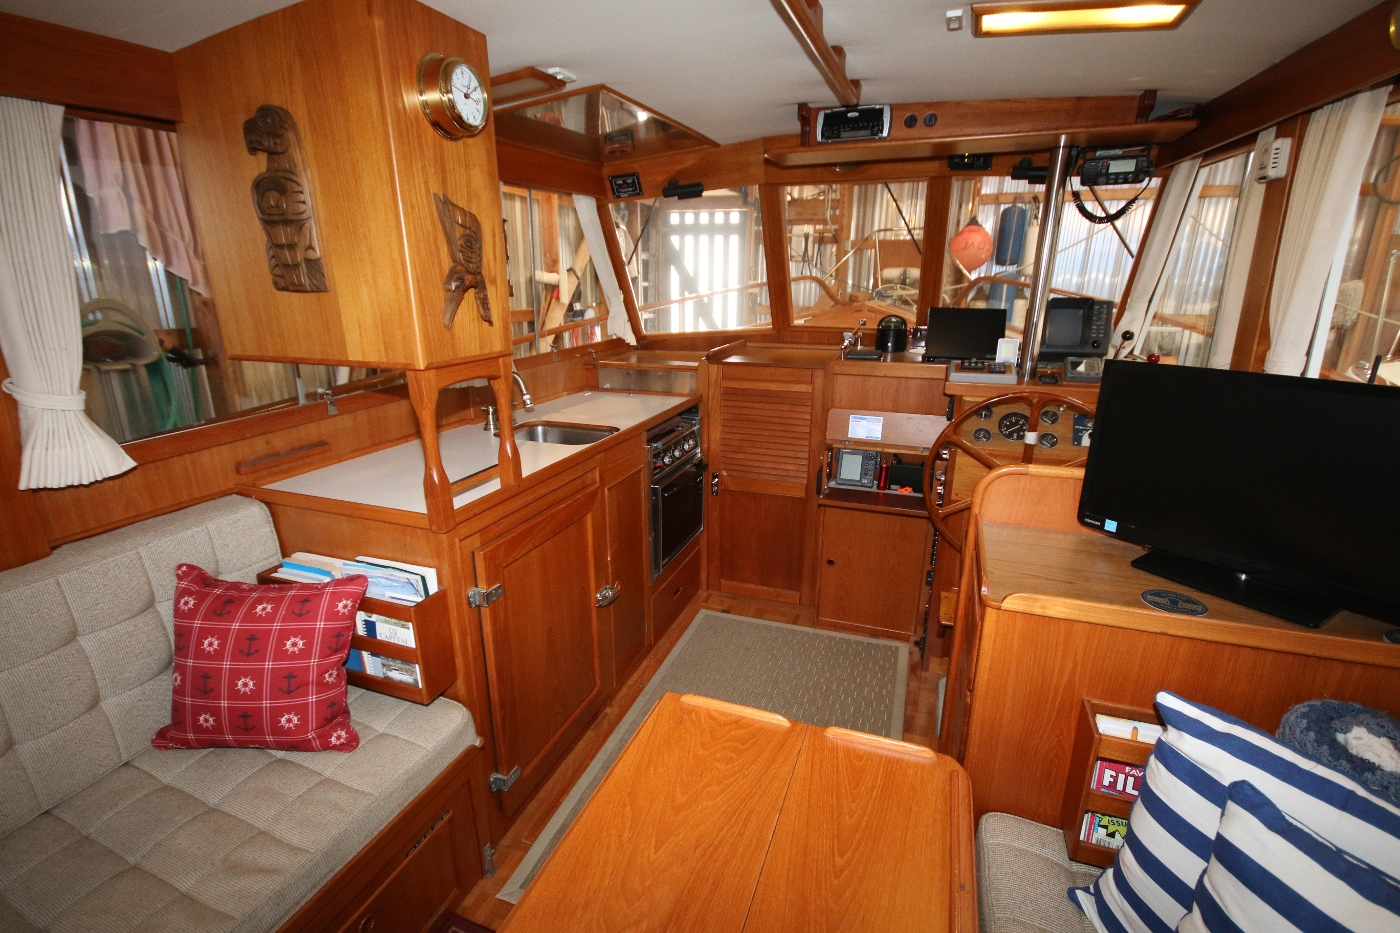 1988 Grand Banks 32, View forward to Galley